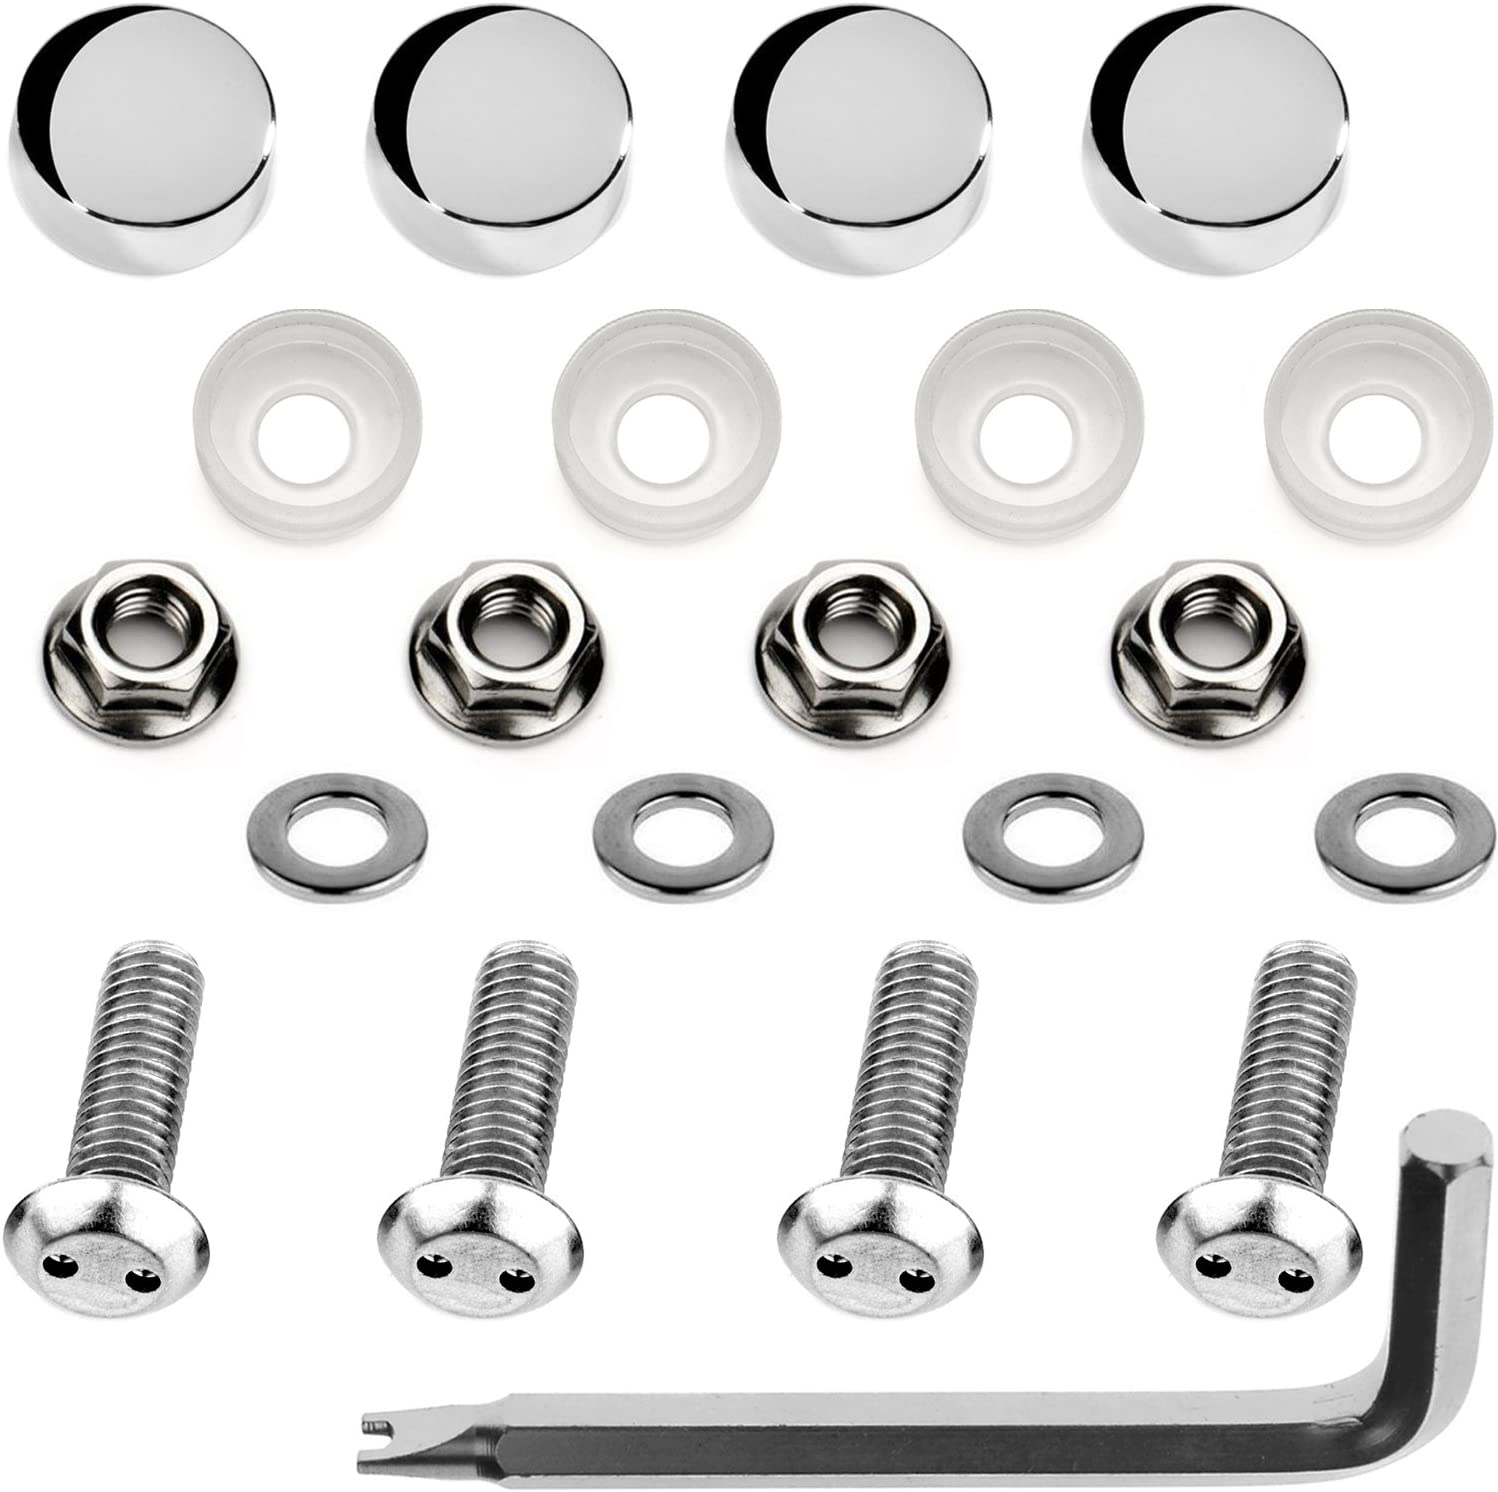 M6x20mm, Chrome Caps LFPartS Stainless Steel Rust Resistant License Plate Frame Security Anti-Theft Machine Type Screws Fasteners